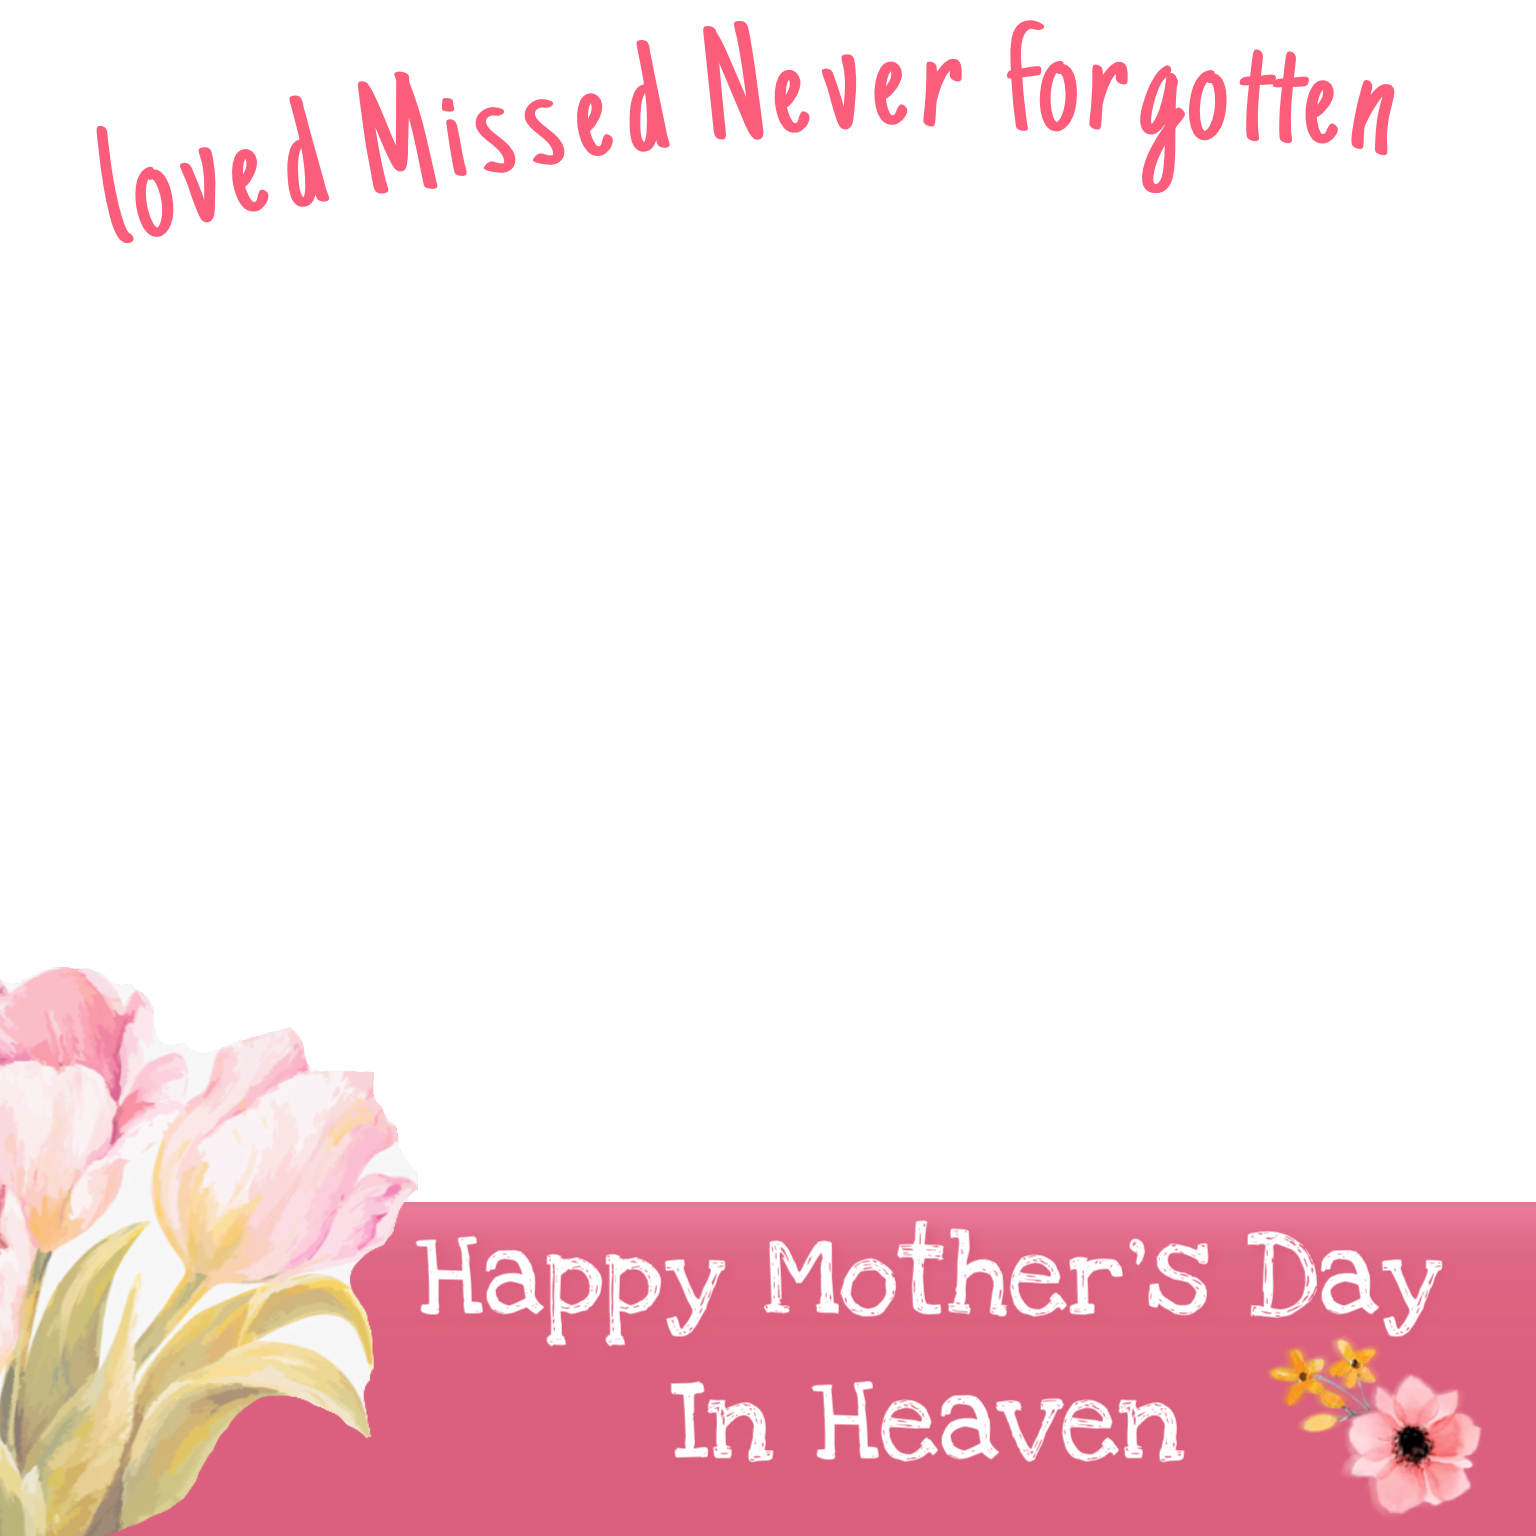 Pin By Wenmay On Profile Pic Frames Mother S Day In Heaven Happy Mothers Day Facebook Frame